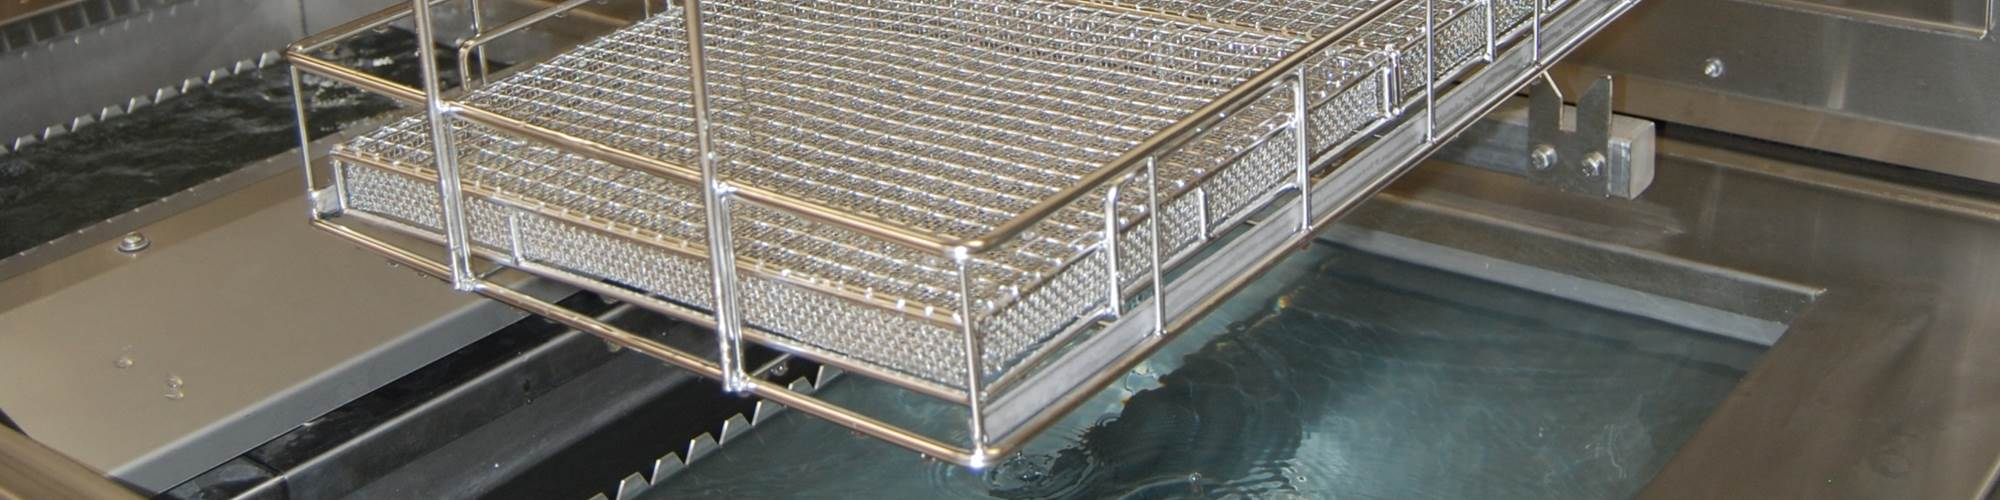 covered baskets preparing for passivation